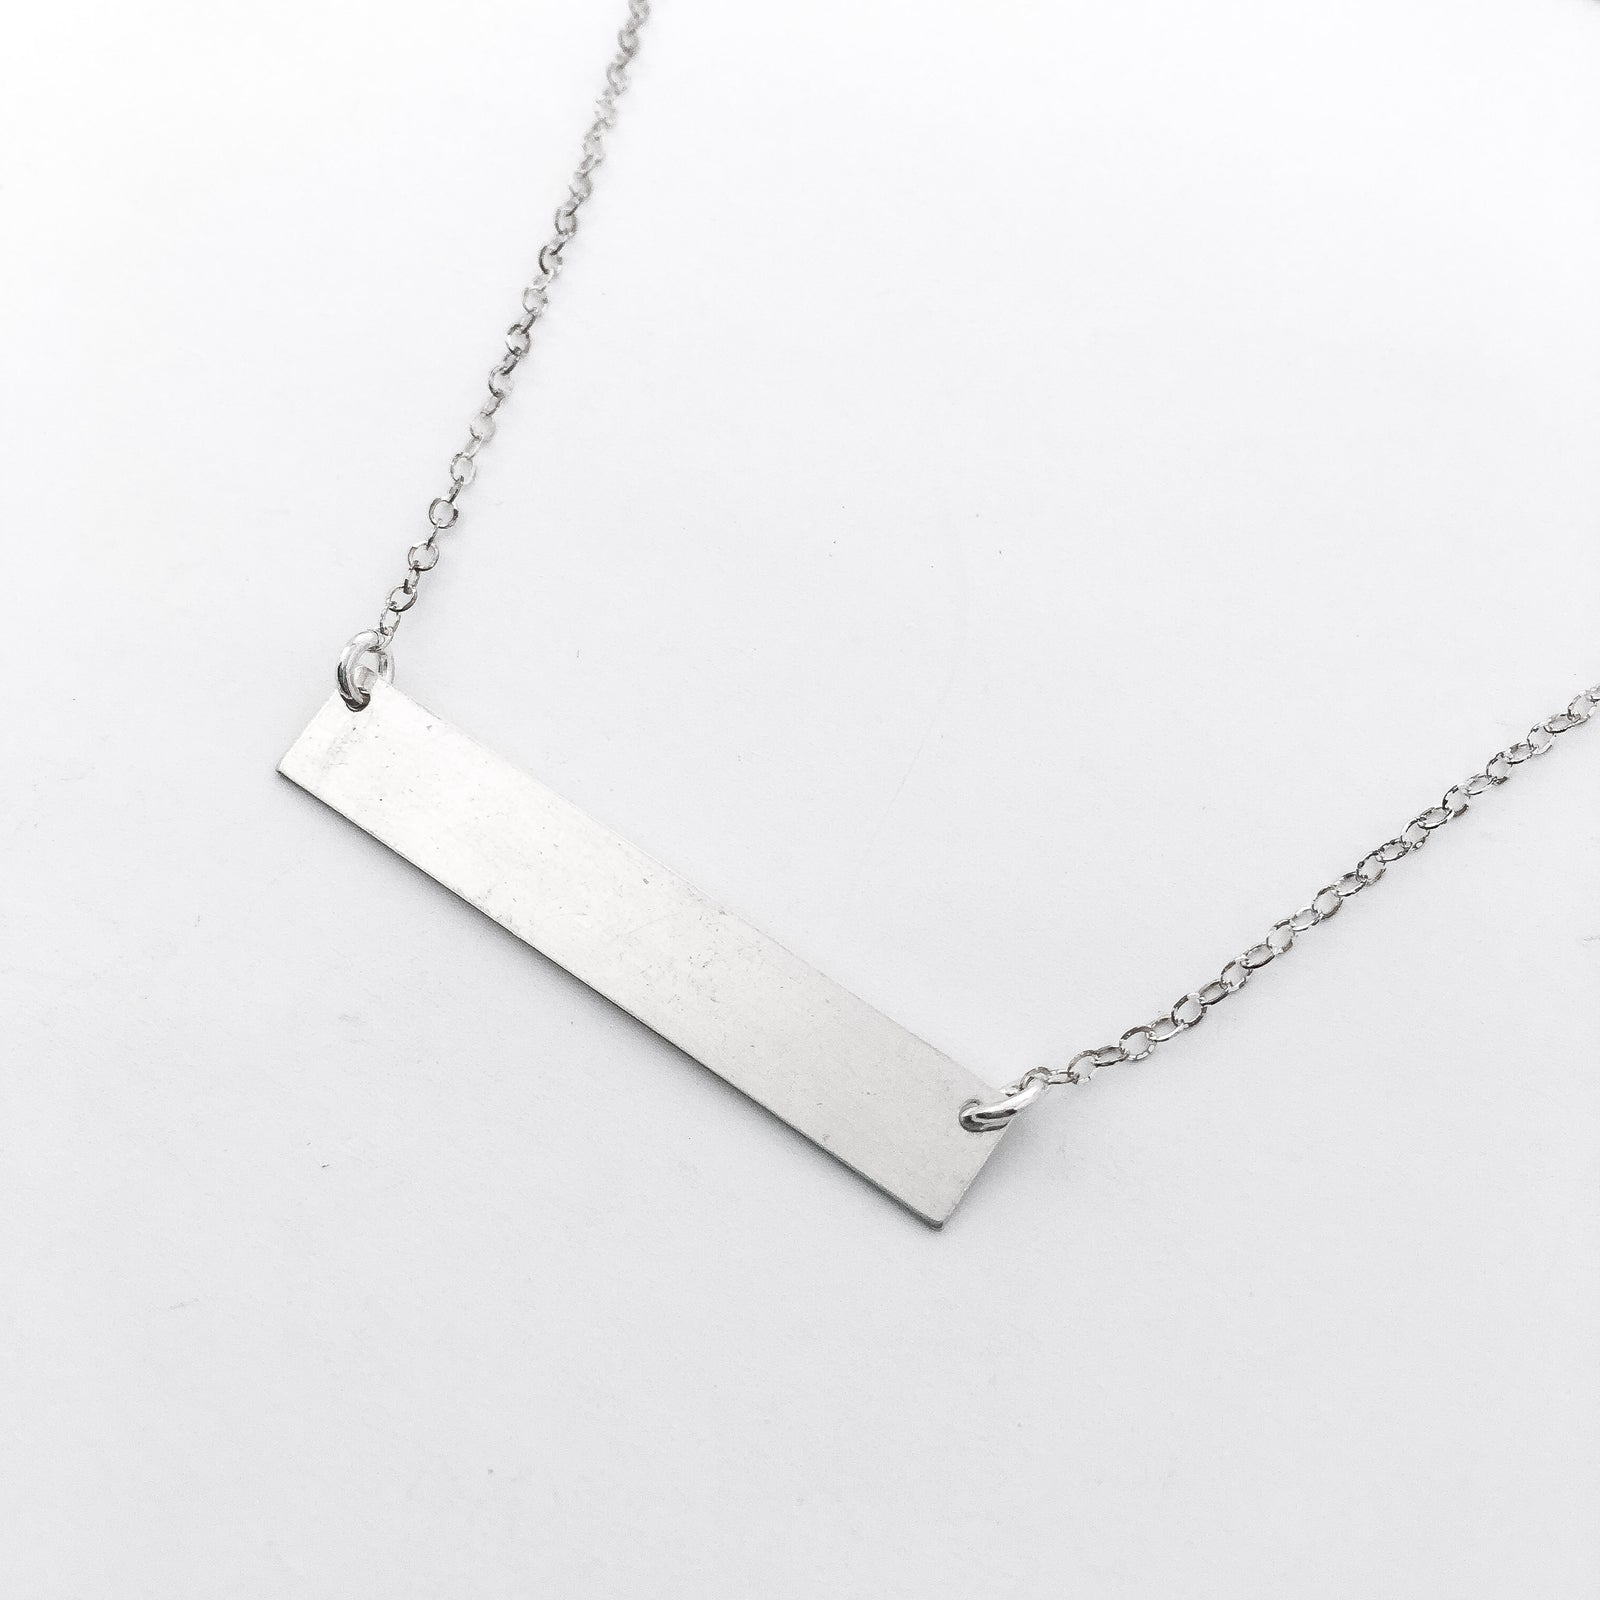 STERLING SILVER BAR NECKLACE | SIZE OPTIONS